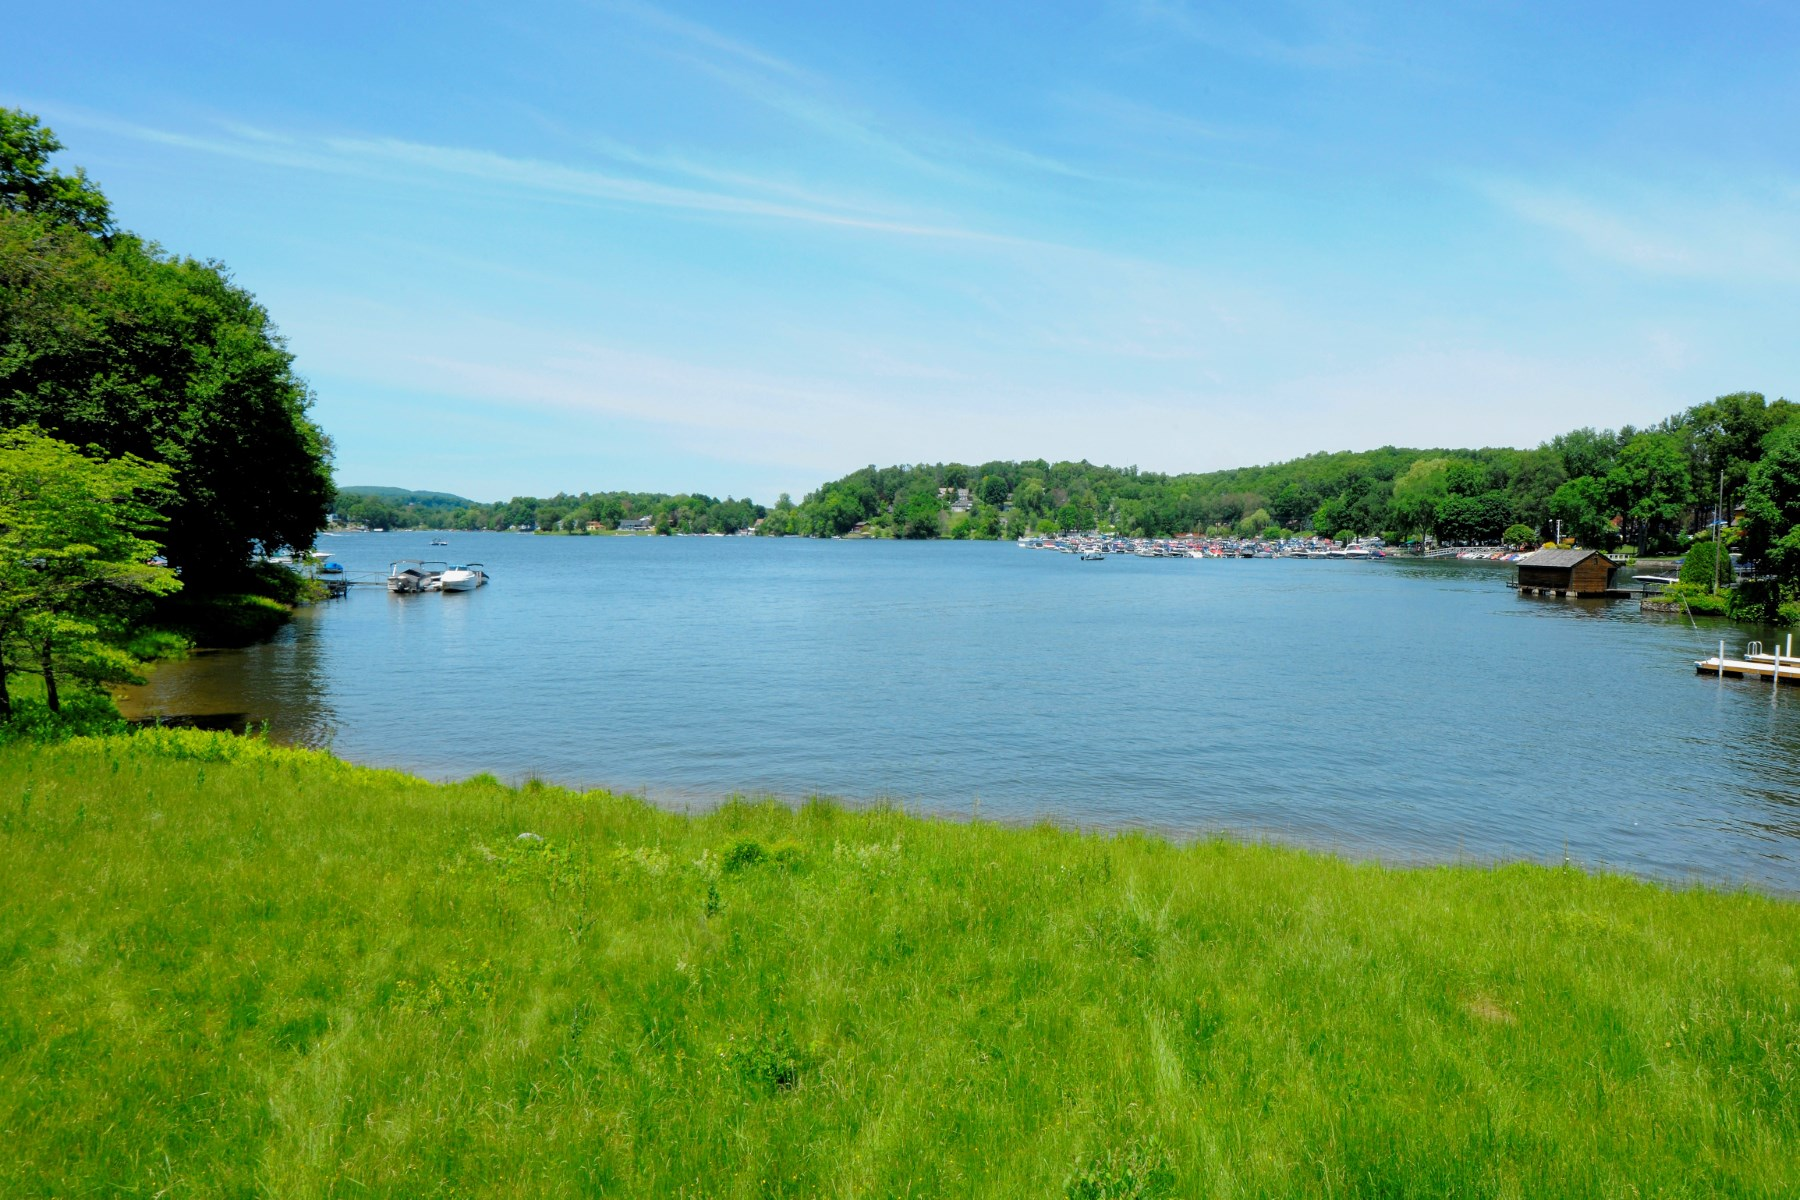 Terreno por un Venta en Candlewood Lake Life 174 Candlewood Lake Road Brookfield, Connecticut, 06804 Estados Unidos